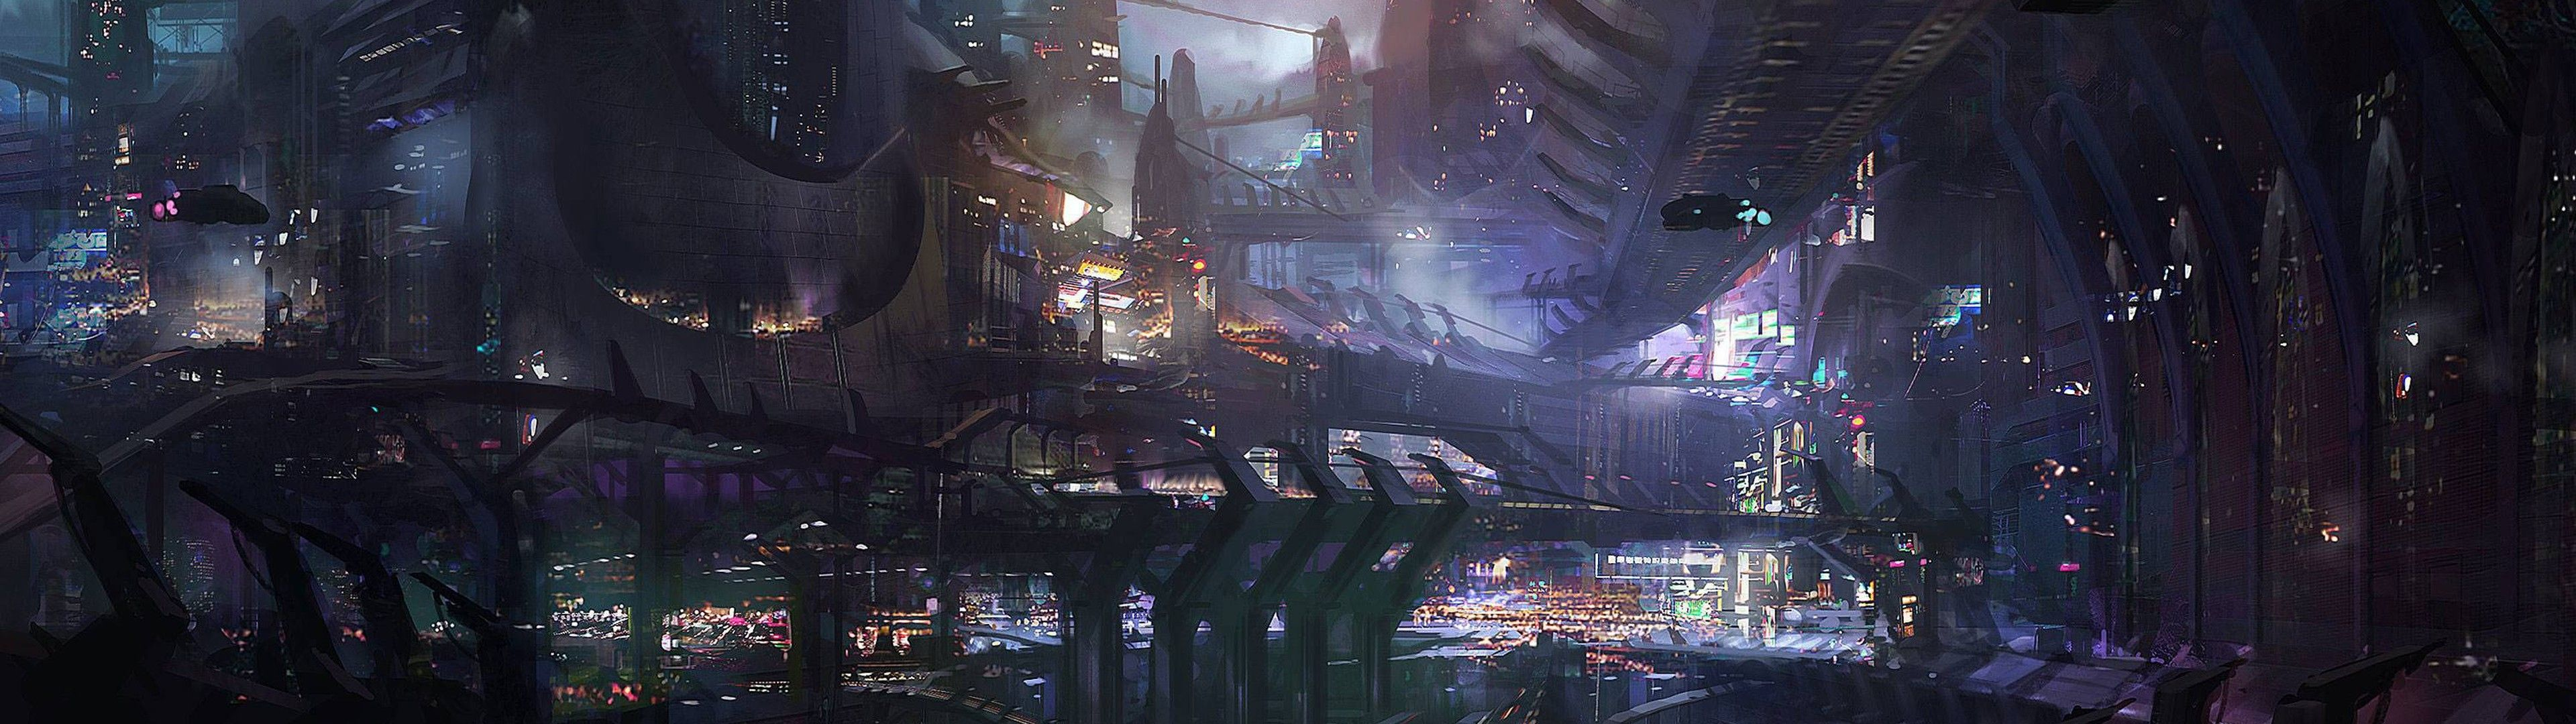 Forever City (With images) Sci fi wallpaper, Futuristic